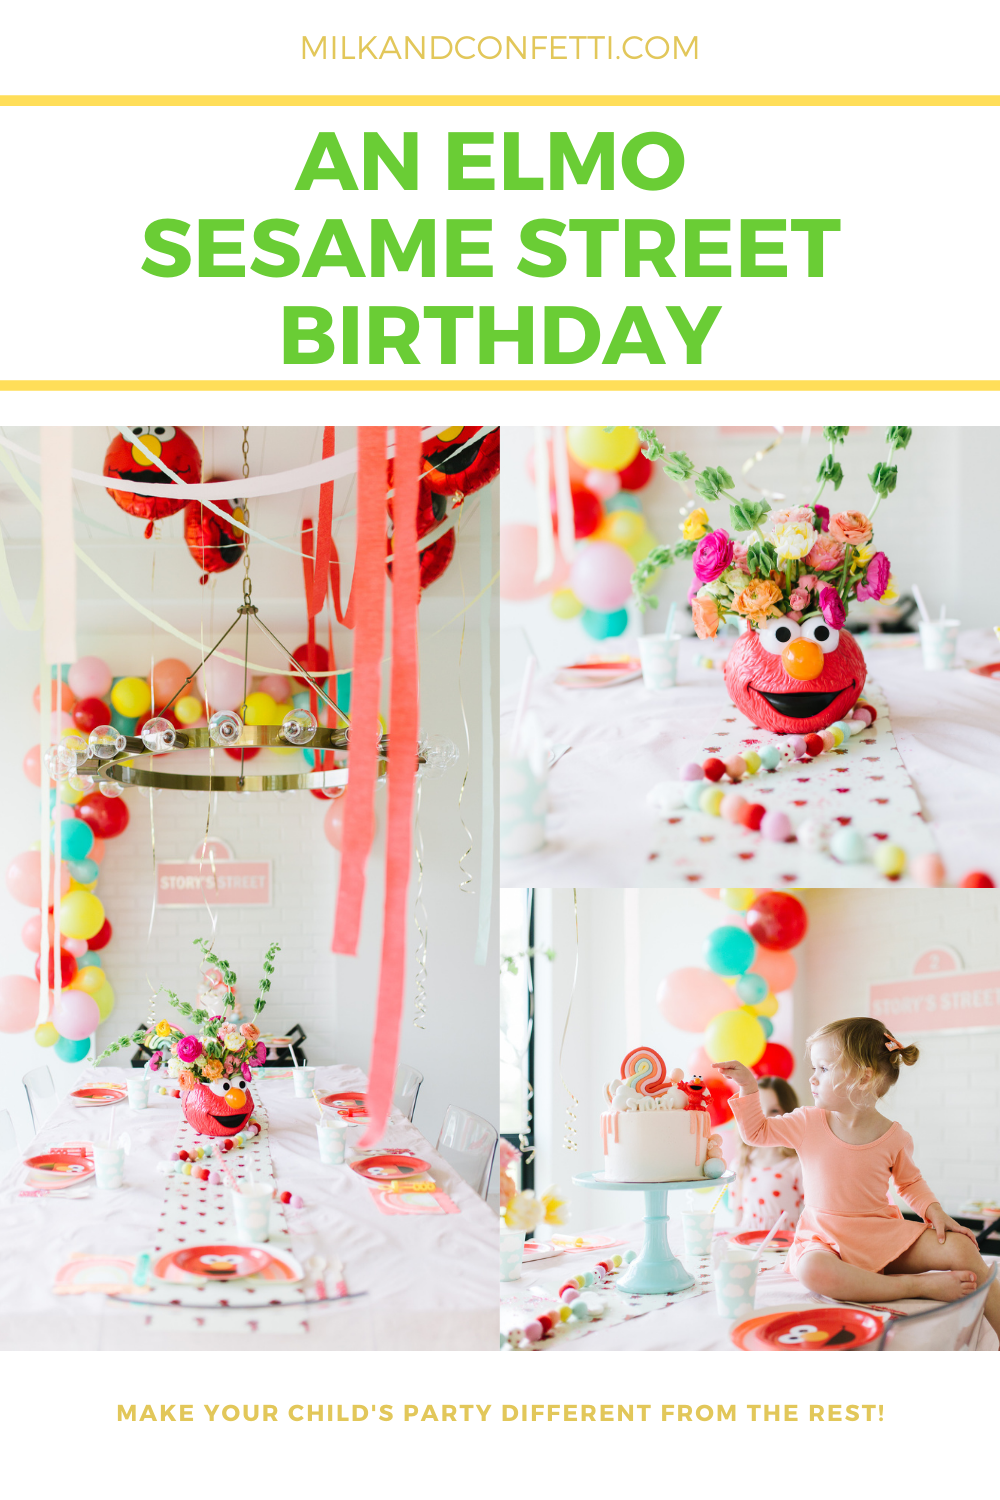 A Sesame Street Elmo Second birthday party with fun decor balloons, streamers cake and flowers!